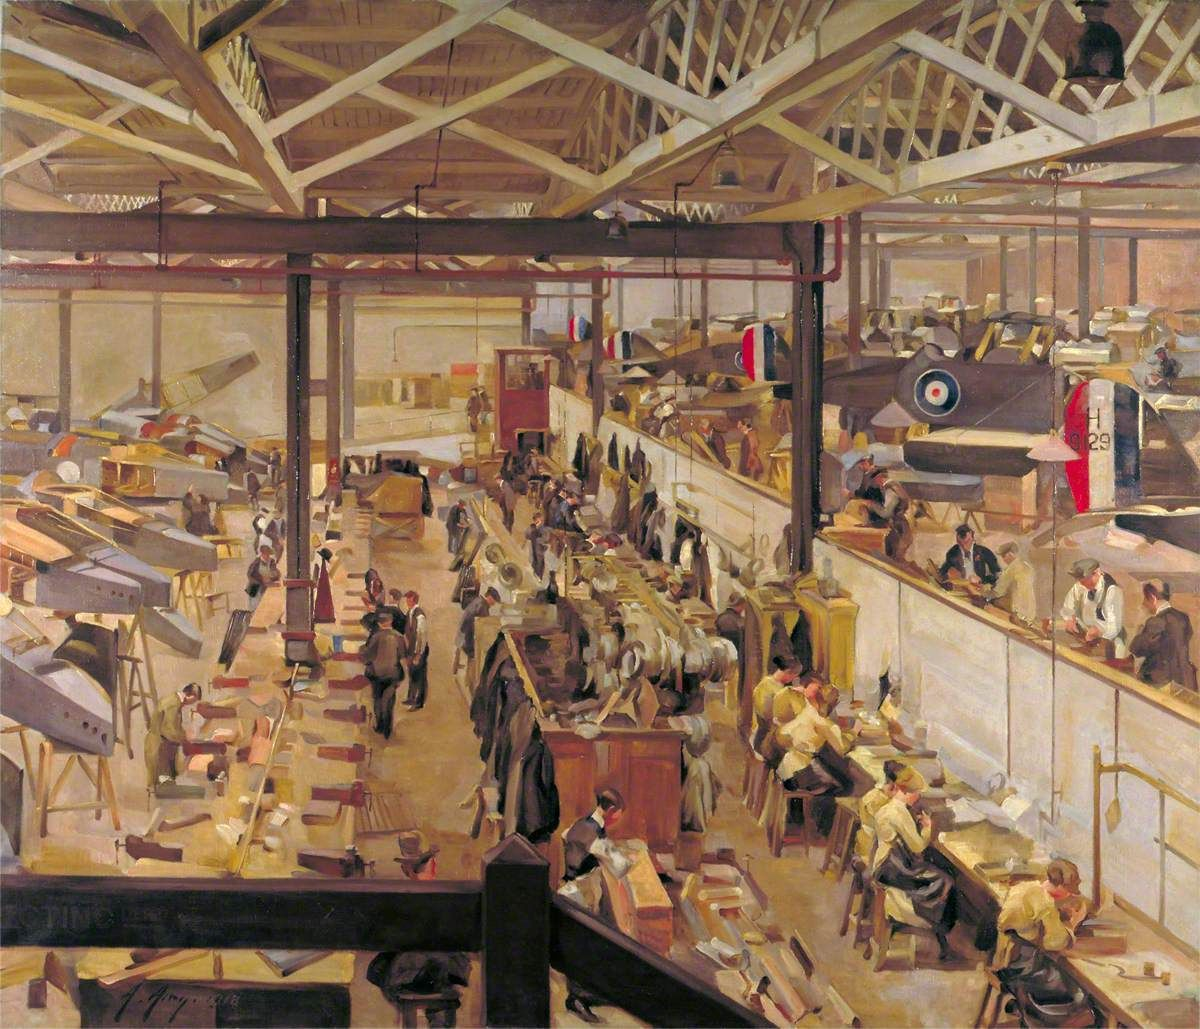 An Aircraft Assembly Shop, Hendon by Anna Airey  Date 1918  Medium oil on canvas  Measurements 182.8 x 213.3 cm  Accession number IWM ART 1931  Acquisition method commissioned, acquired, 1919    Date 1918  Medium oil on canvas  Measurements 182.8 x 213.3 cm  Accession number IWM ART 1931  Acquisition method commissioned, acquired, 1919